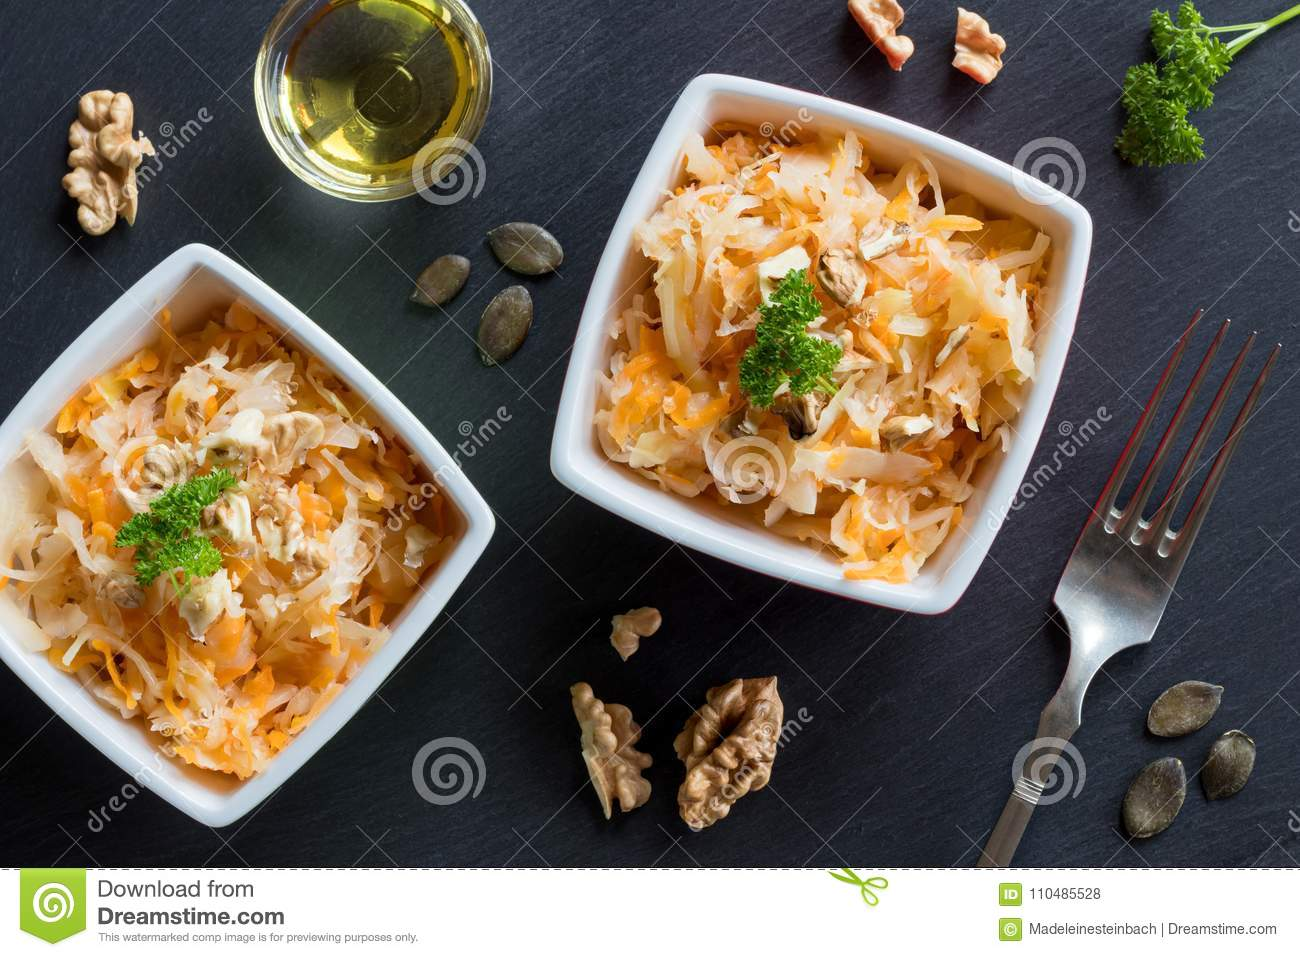 Fermented cabbage and carrots in two bowls